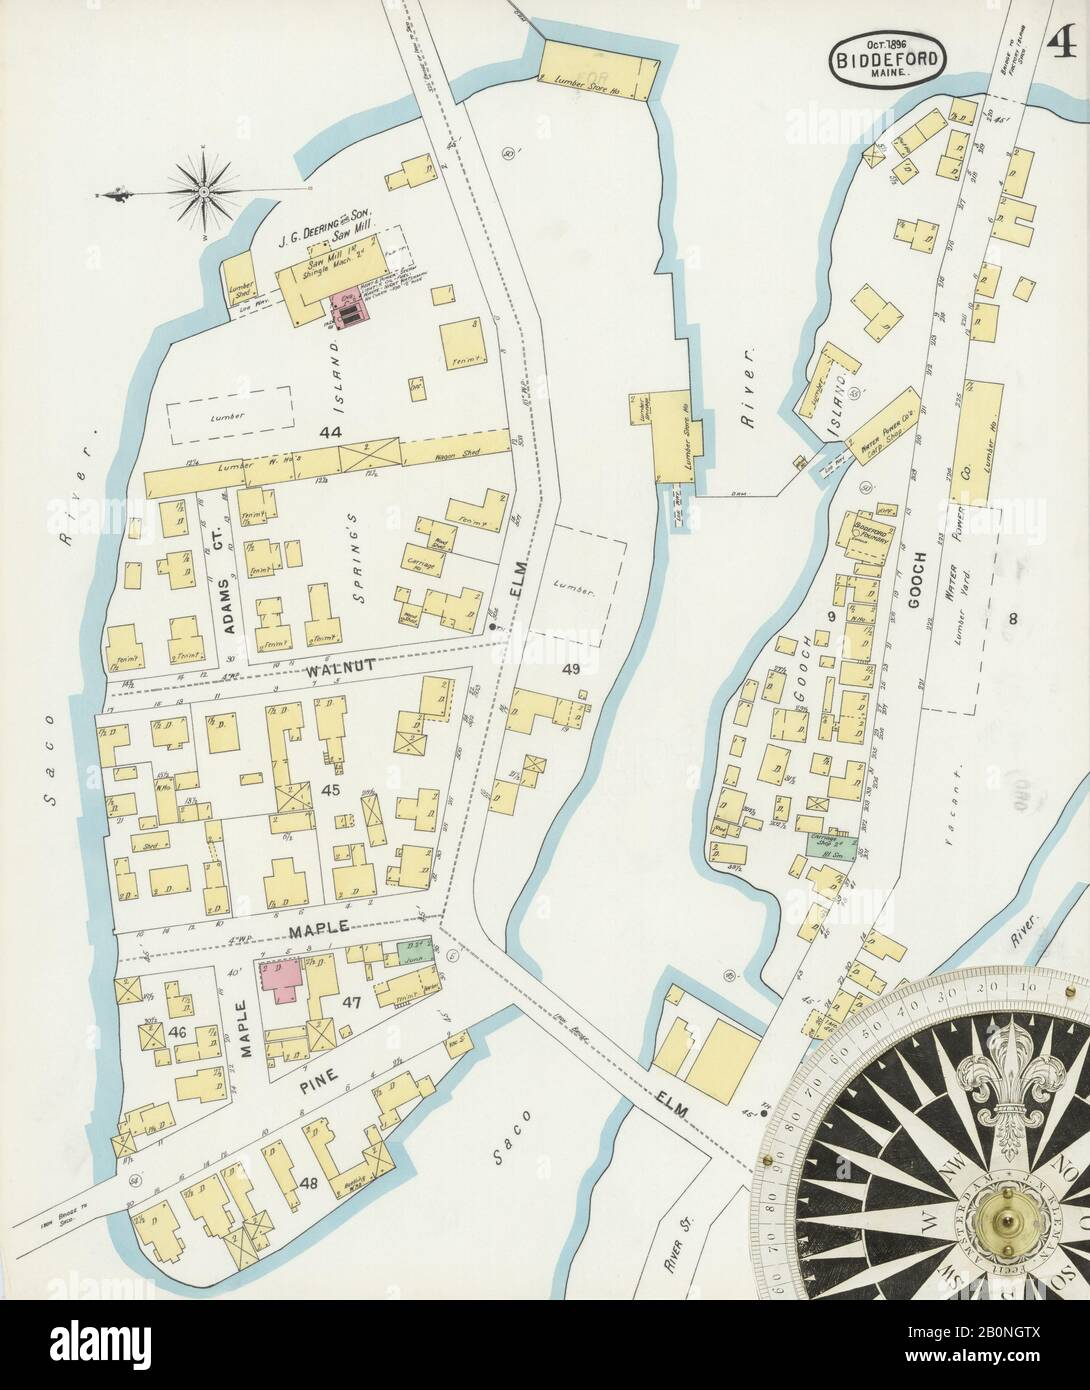 Image 4 Of Sanborn Fire Insurance Map From Biddeford York County Maine Oct 1896 9 Sheet S America Street Map With A Nineteenth Century Compass Stock Photo Alamy